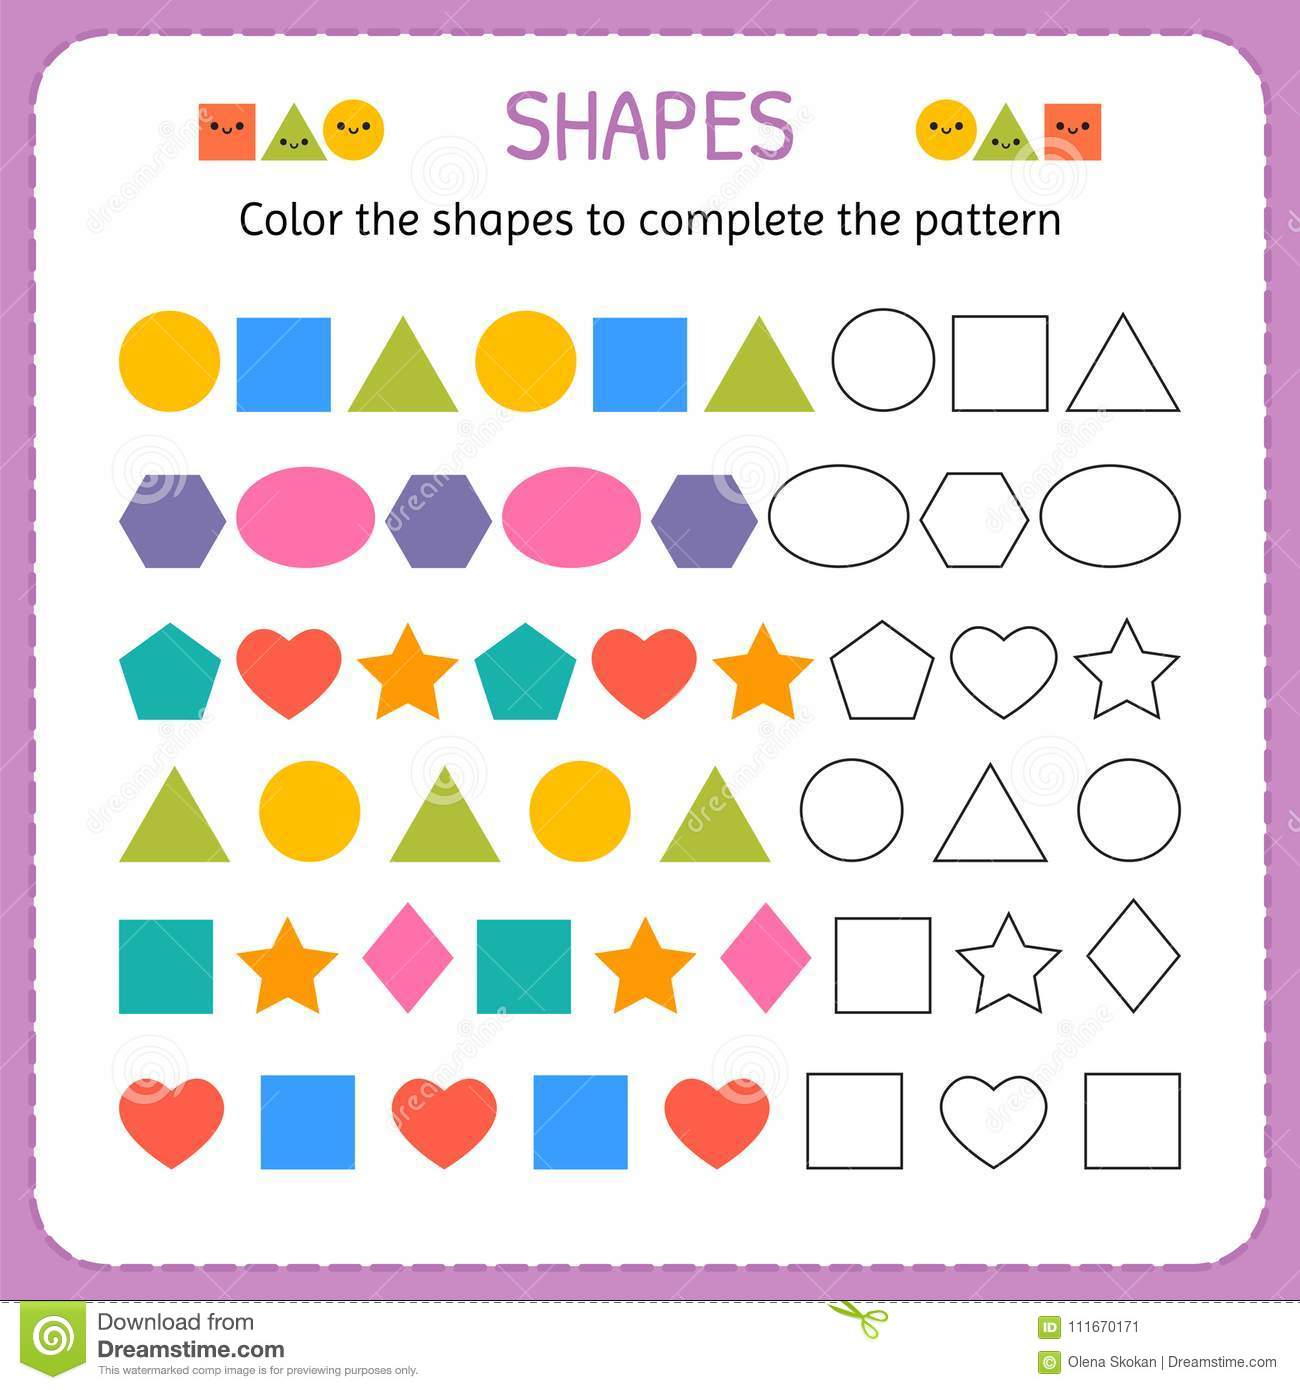 color the shapes to complete the pattern learn shapes and geometric figures preschool or. Black Bedroom Furniture Sets. Home Design Ideas